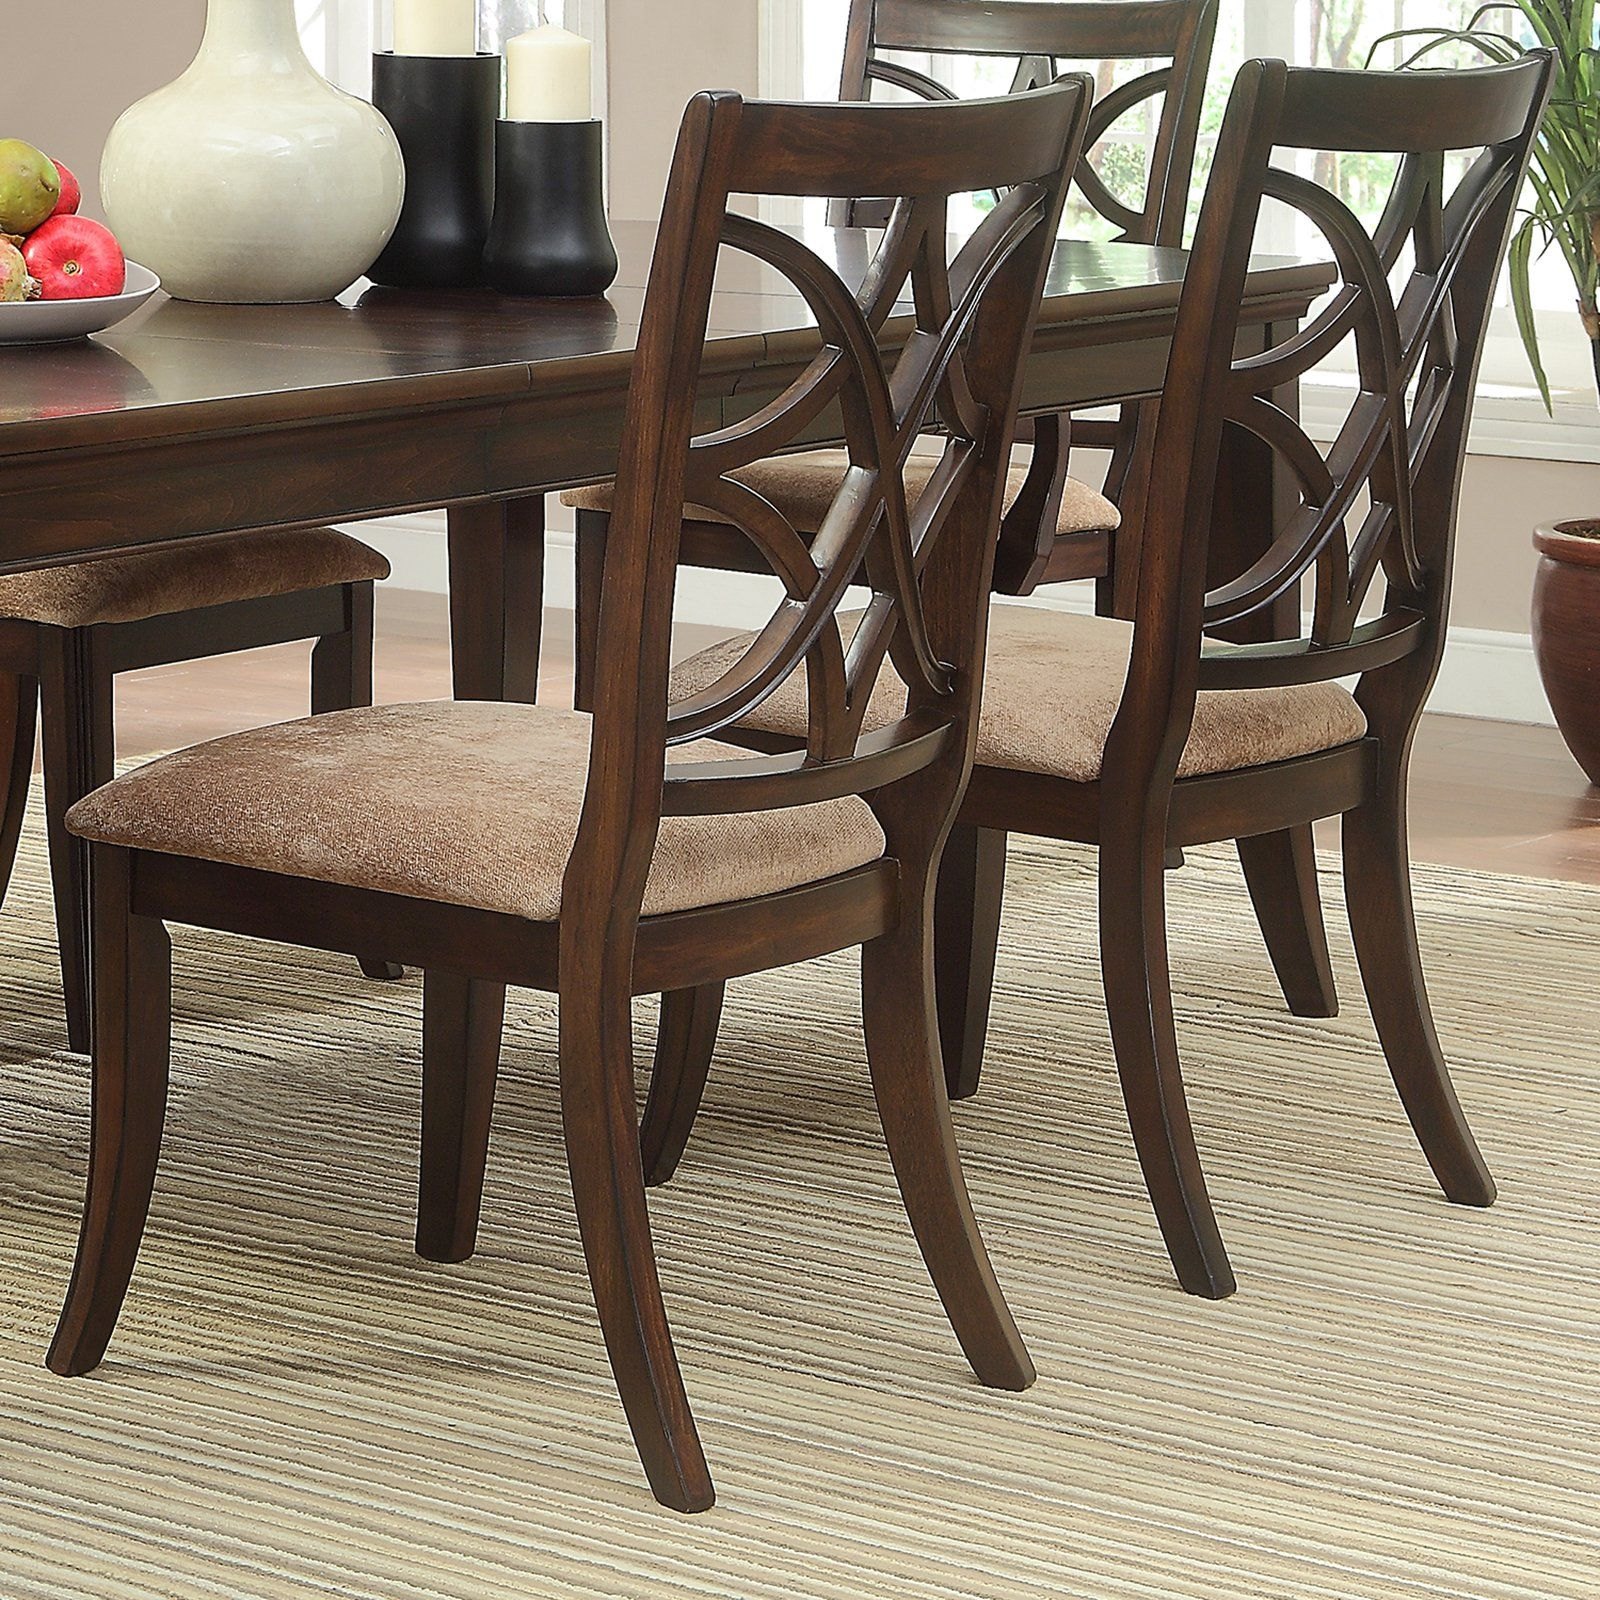 Brilliant Weston Home Keegan Side Chairs Cherry Set Of 2 In 2019 Home Interior And Landscaping Ologienasavecom